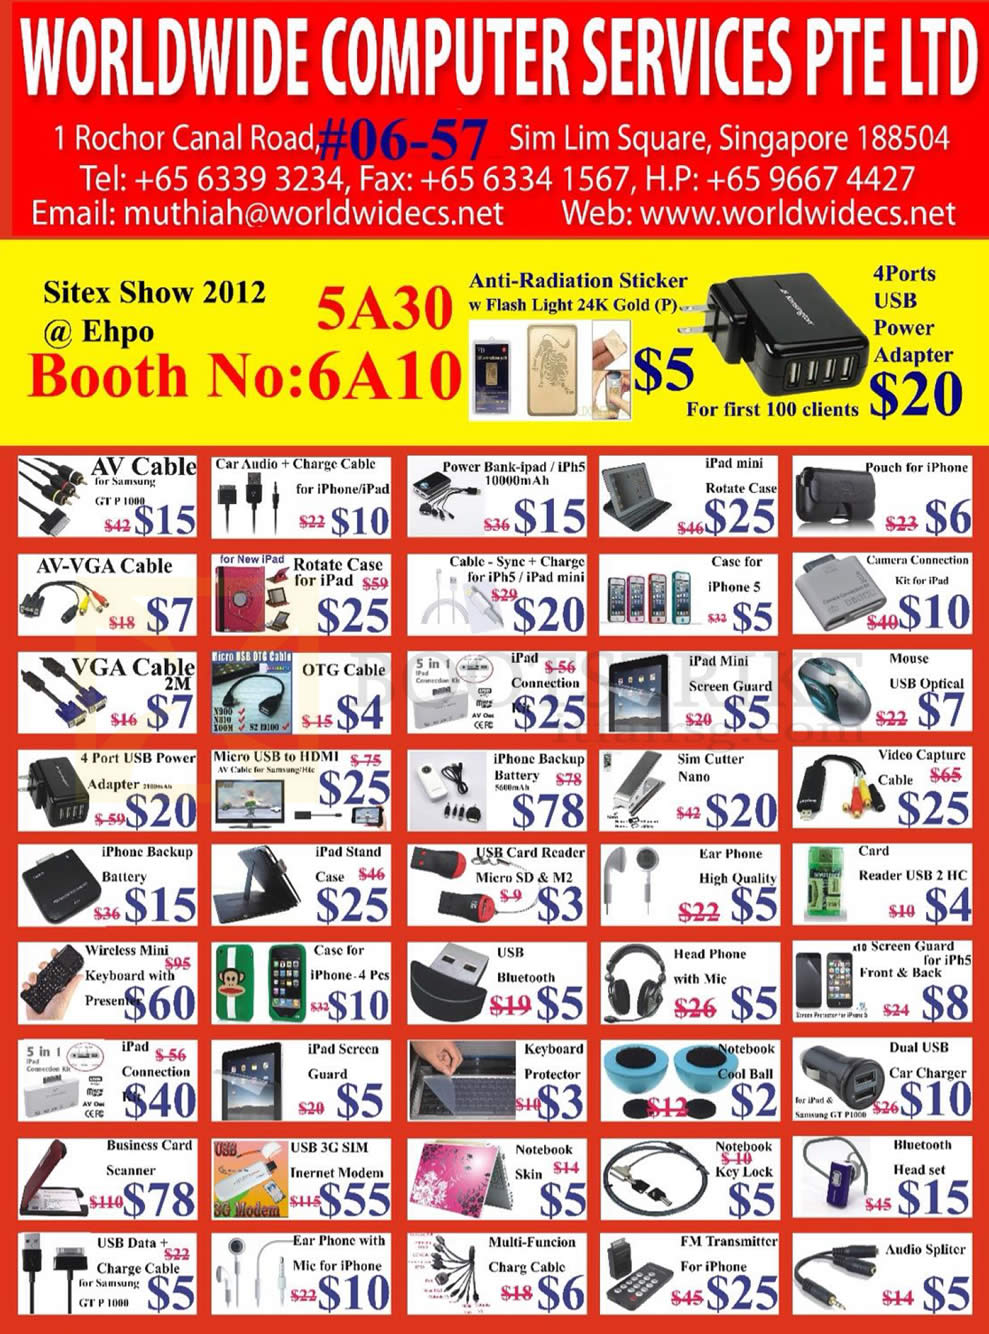 SITEX 2012 price list image brochure of Worldwide Computer Accessories AV Cable, External Battery, IPad Mini Case, IPhone 5 Case, Card Reader, Wireless Keyboard, Screen Protector, 3G Modem, Headphones, Earphones